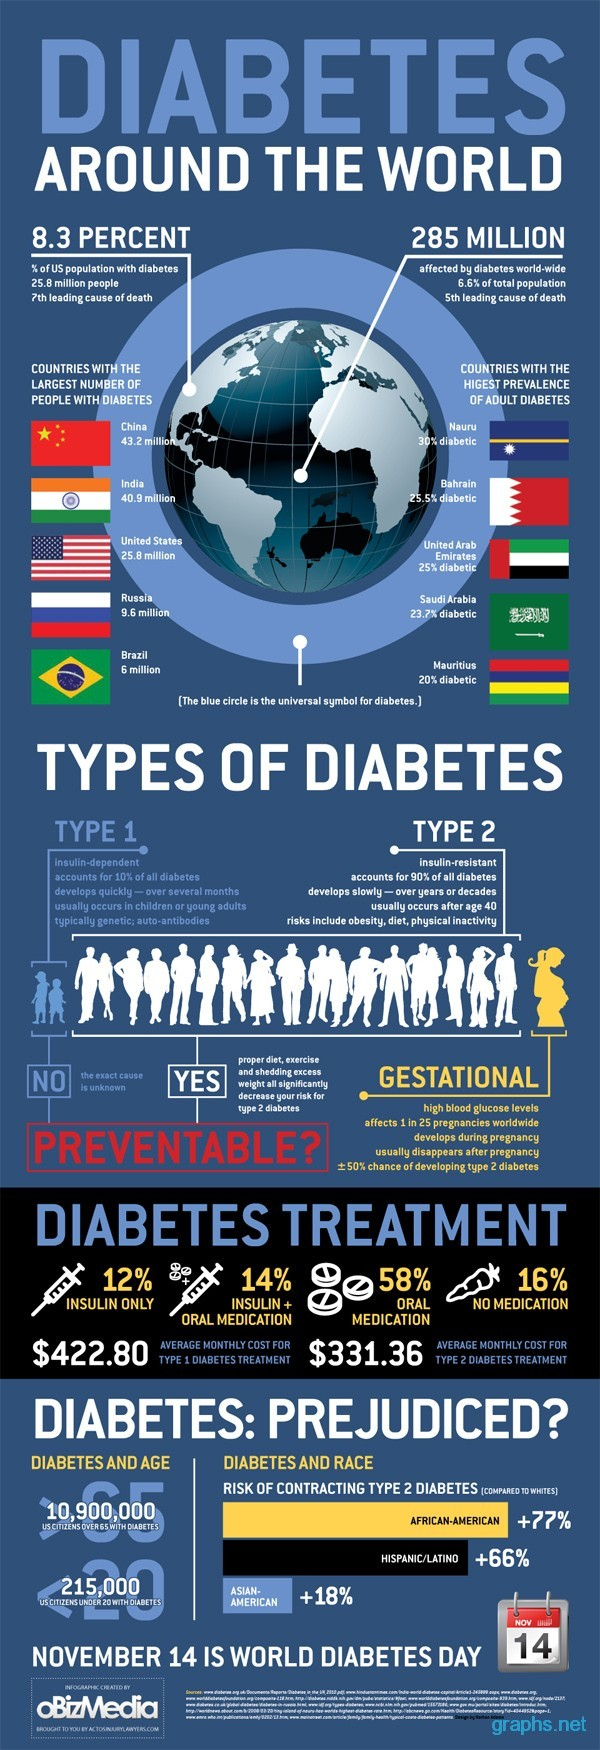 diabetes sufferers worldwide